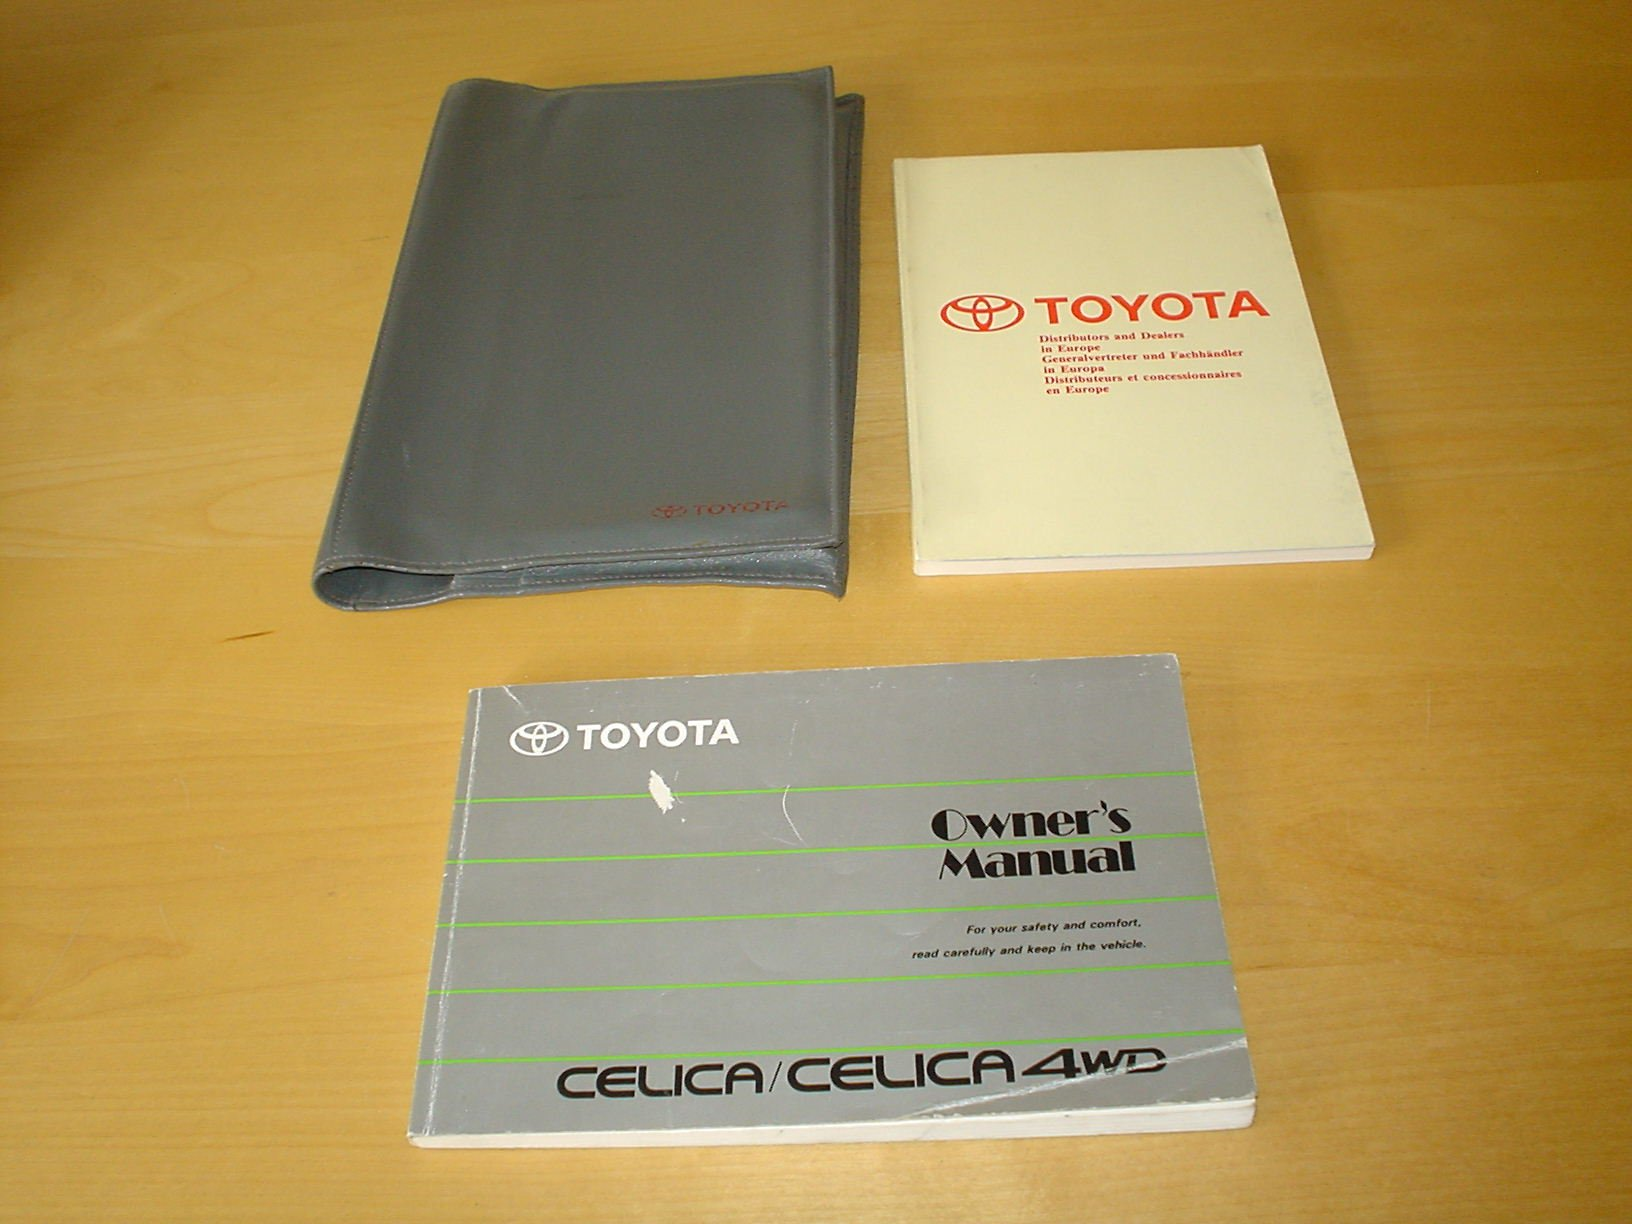 TOYOTA CELICA OWNERS MANUAL HANDBOOK with WALLET (1989 - 1994) - GT4 GT-F  GT-FOUR GTS GT-S GTI GT-I GT-R GTR AT180 ST182 ST183 ST185 1.6, 2.0 LITRE  ENGINE ...